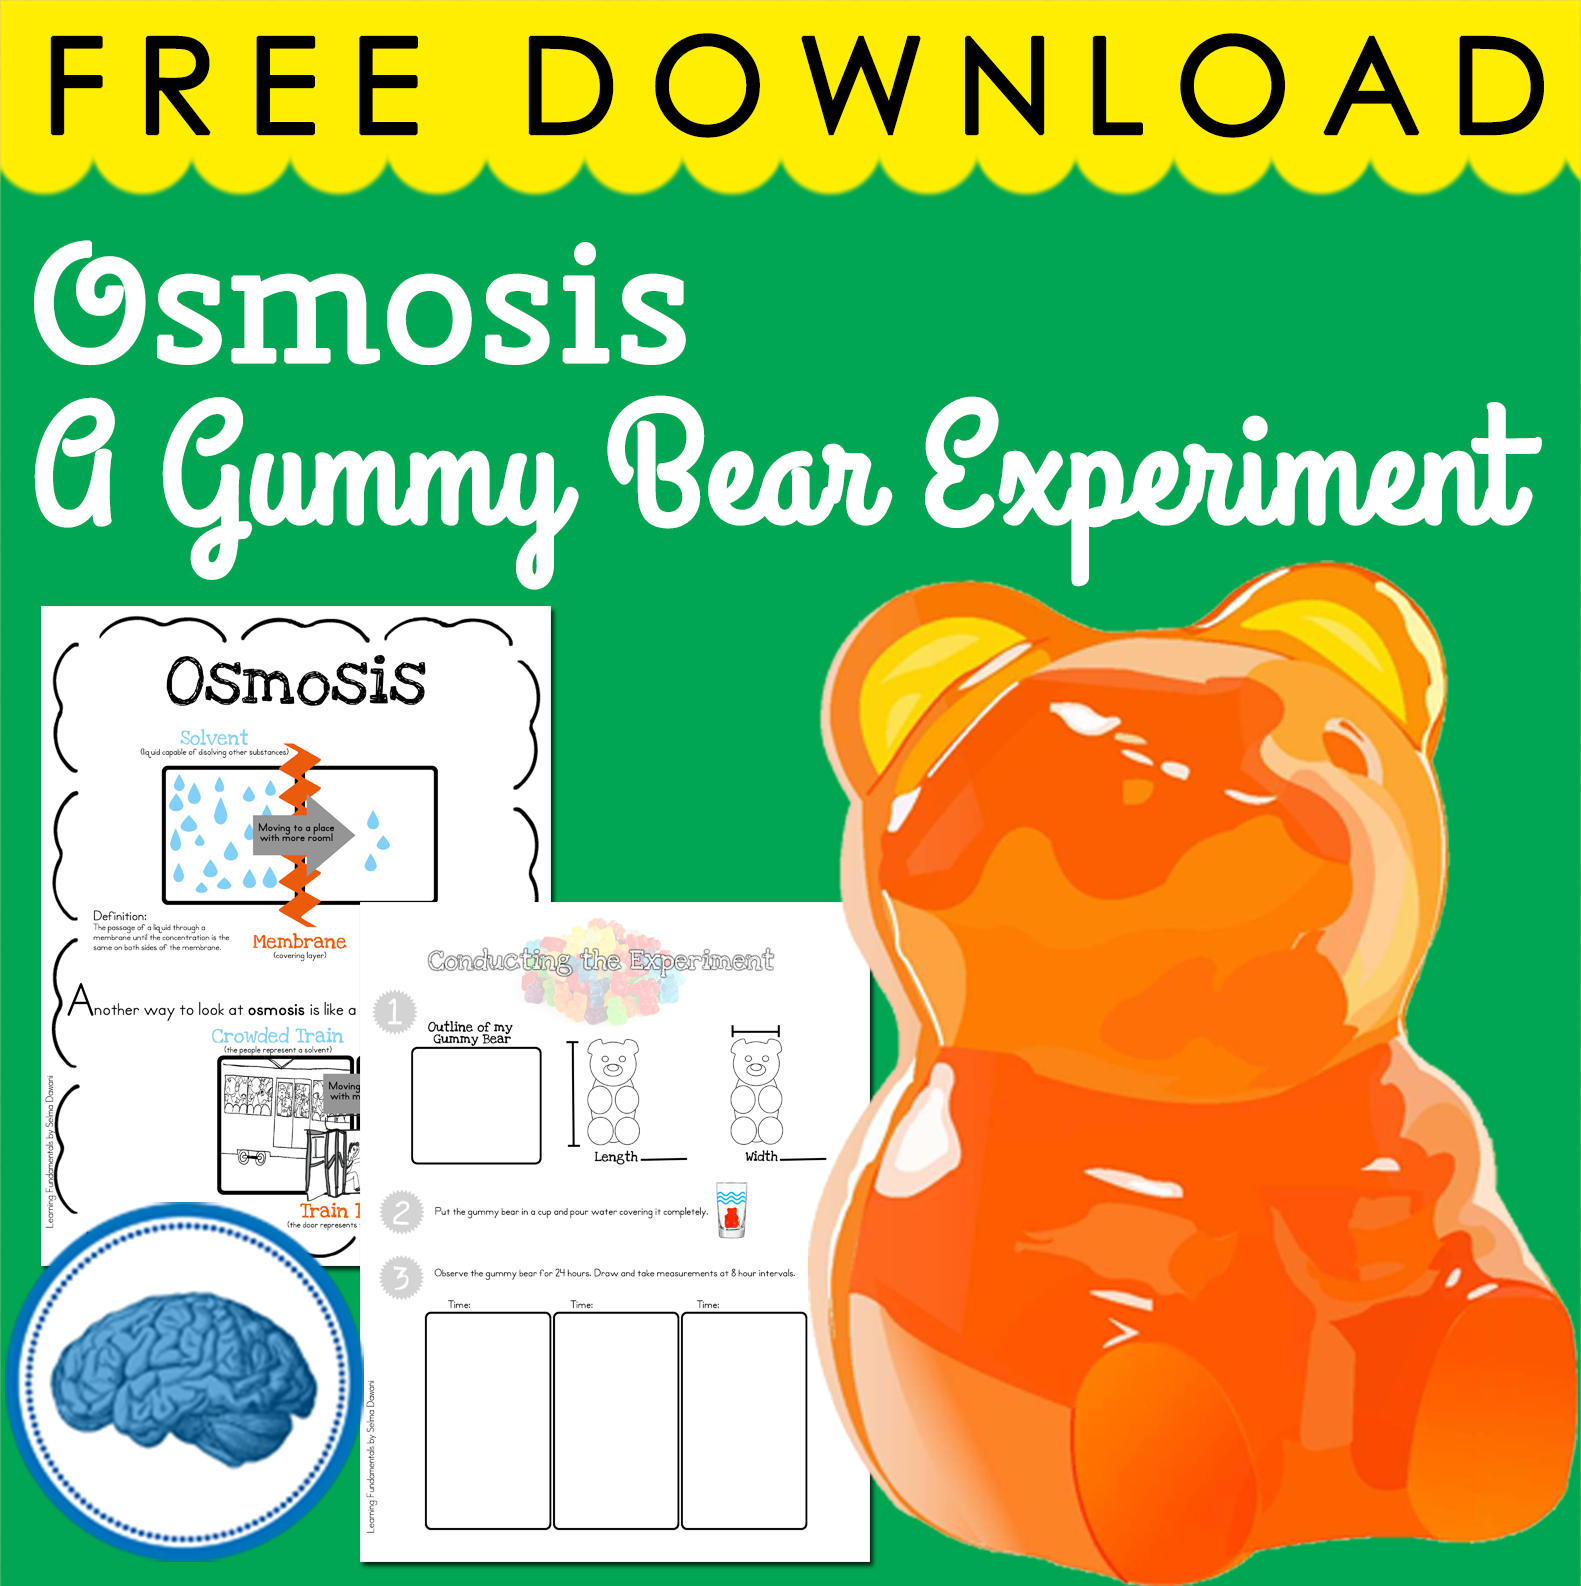 osmosis in gummy bears Gummy bears and osmosis 1 diffusion - the movement of stuff from where there is more to where there is less introduction to biochemistry example: heat (energy) from hot cocoa will move out.